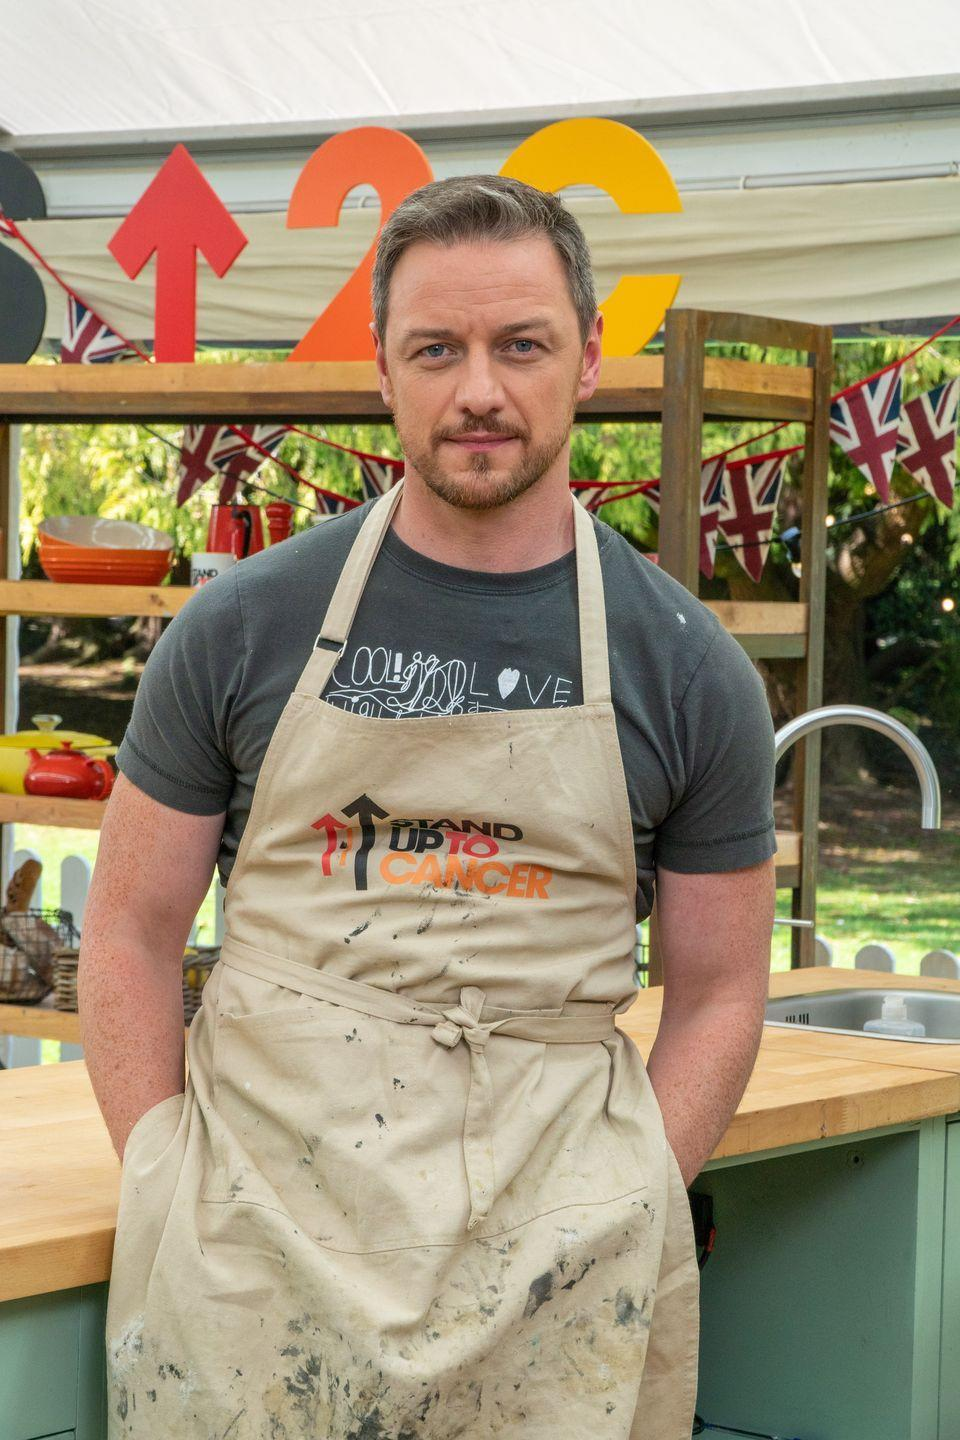 <p>Actor James McAvoy, who stars in His Dark Materials and X:Men, will be giving baking a go in the tent. </p>